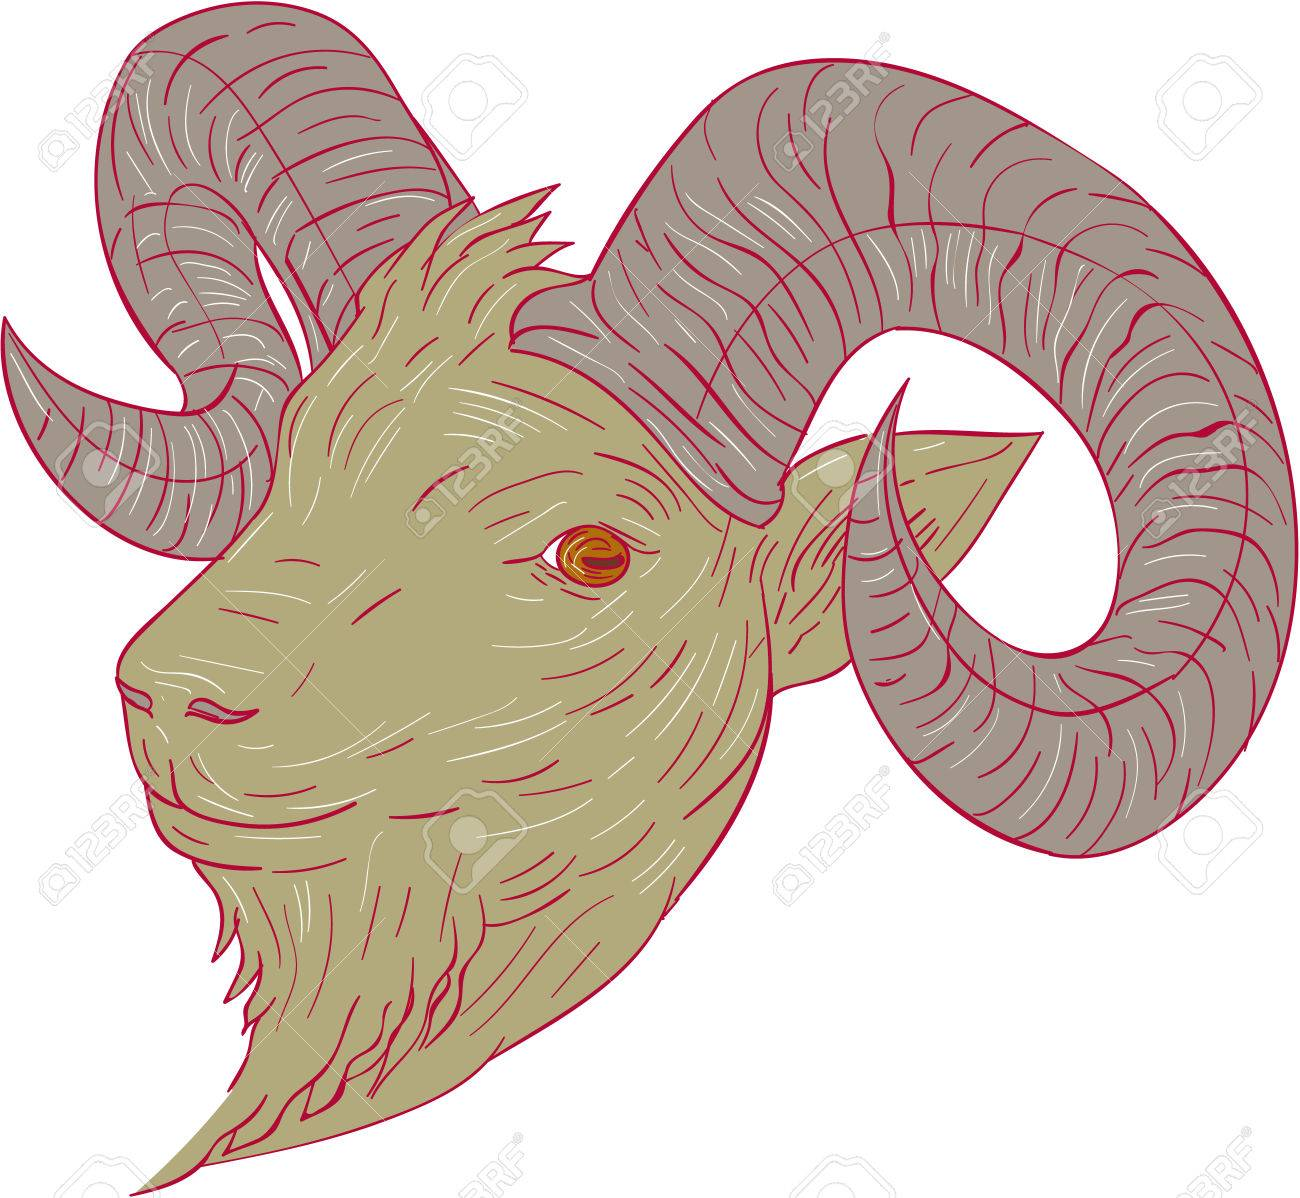 Drawing sketch style illustration of a mountain goat ram head